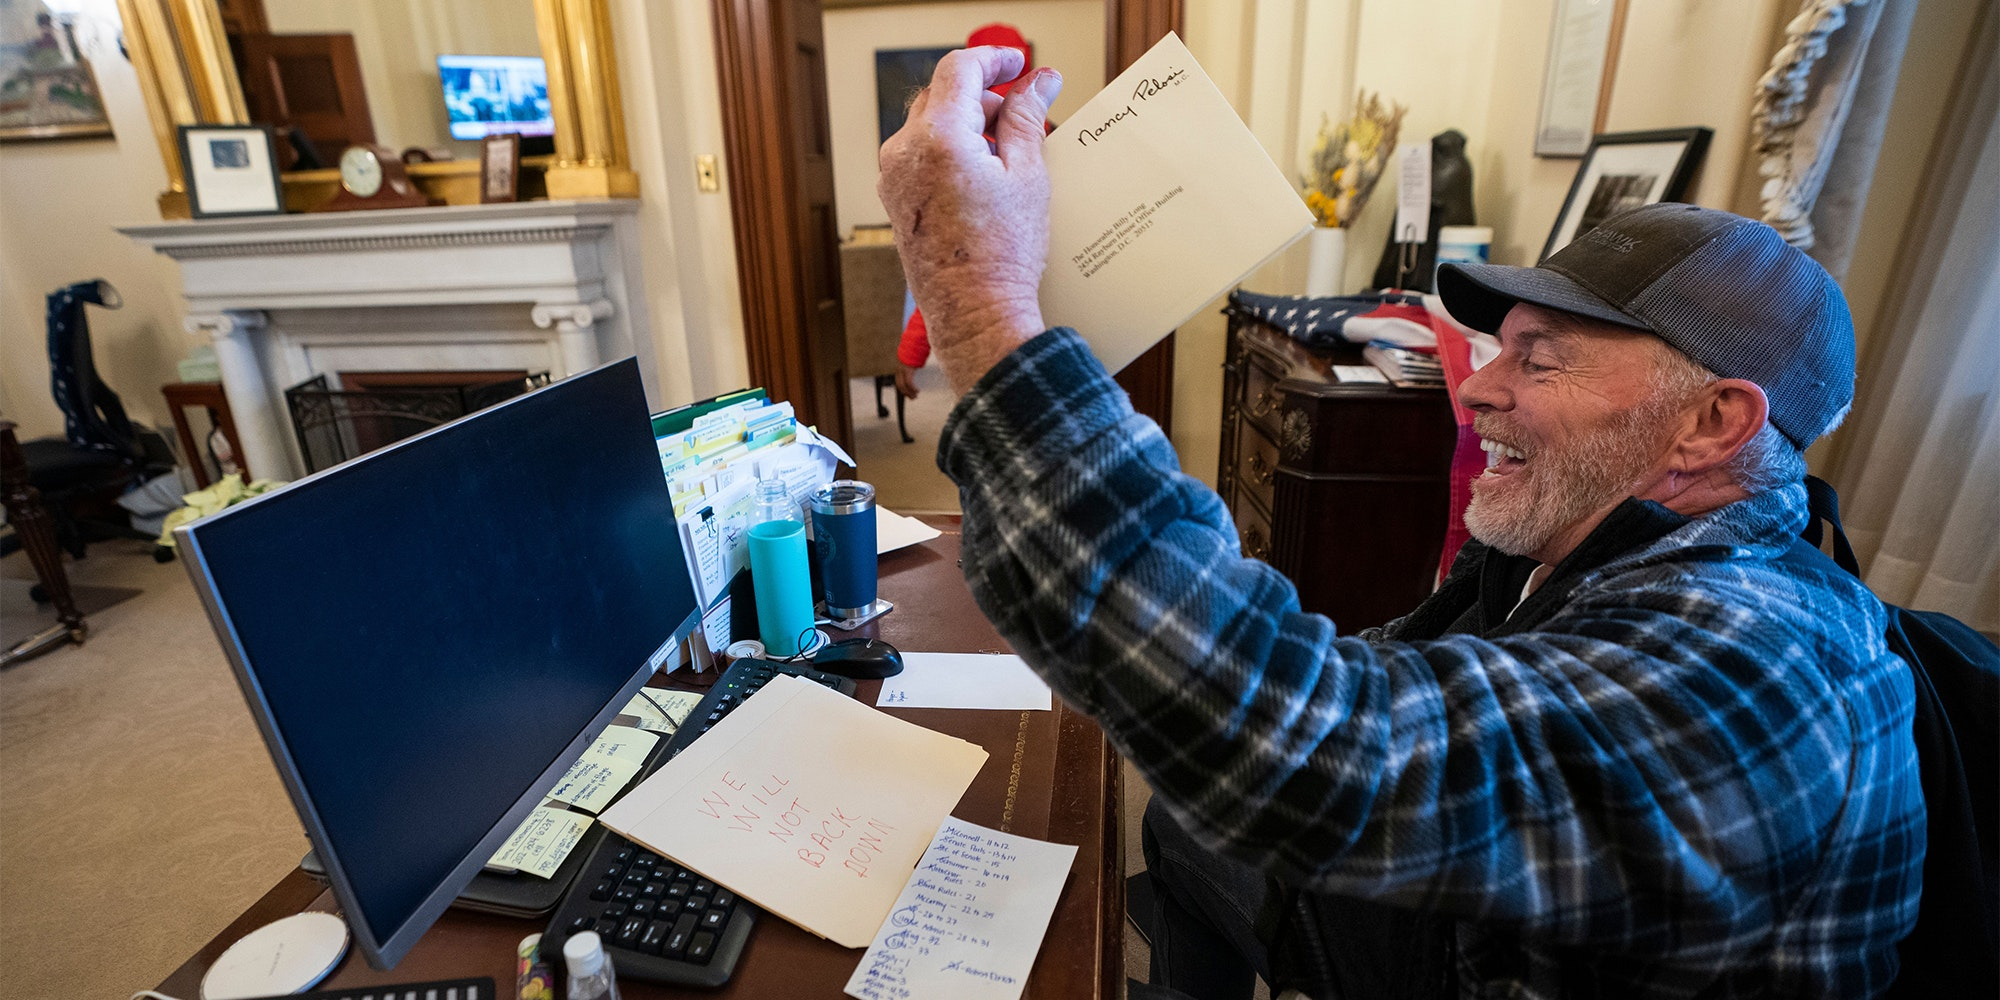 """""""Bigo"""" Barnett holds a piece of Nancy Pelosi's mail in the air, laughing as he sits at her desk"""